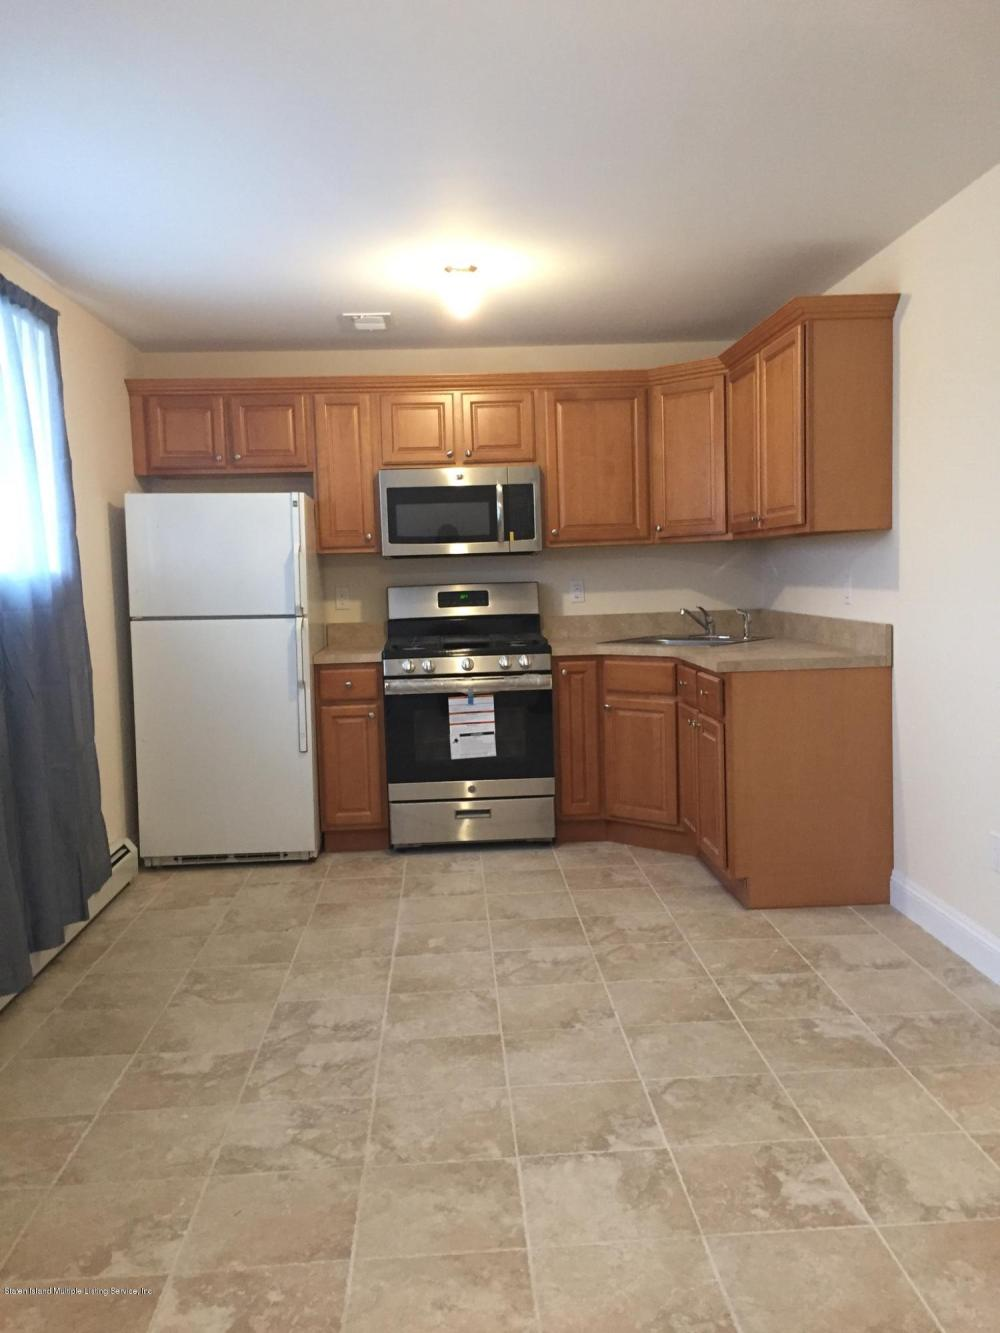 95 Allison Avenue,Staten Island,New York,10306,United States,2 Bedrooms Bedrooms,4 Rooms Rooms,1 BathroomBathrooms,Res-Rental,Allison,1124146